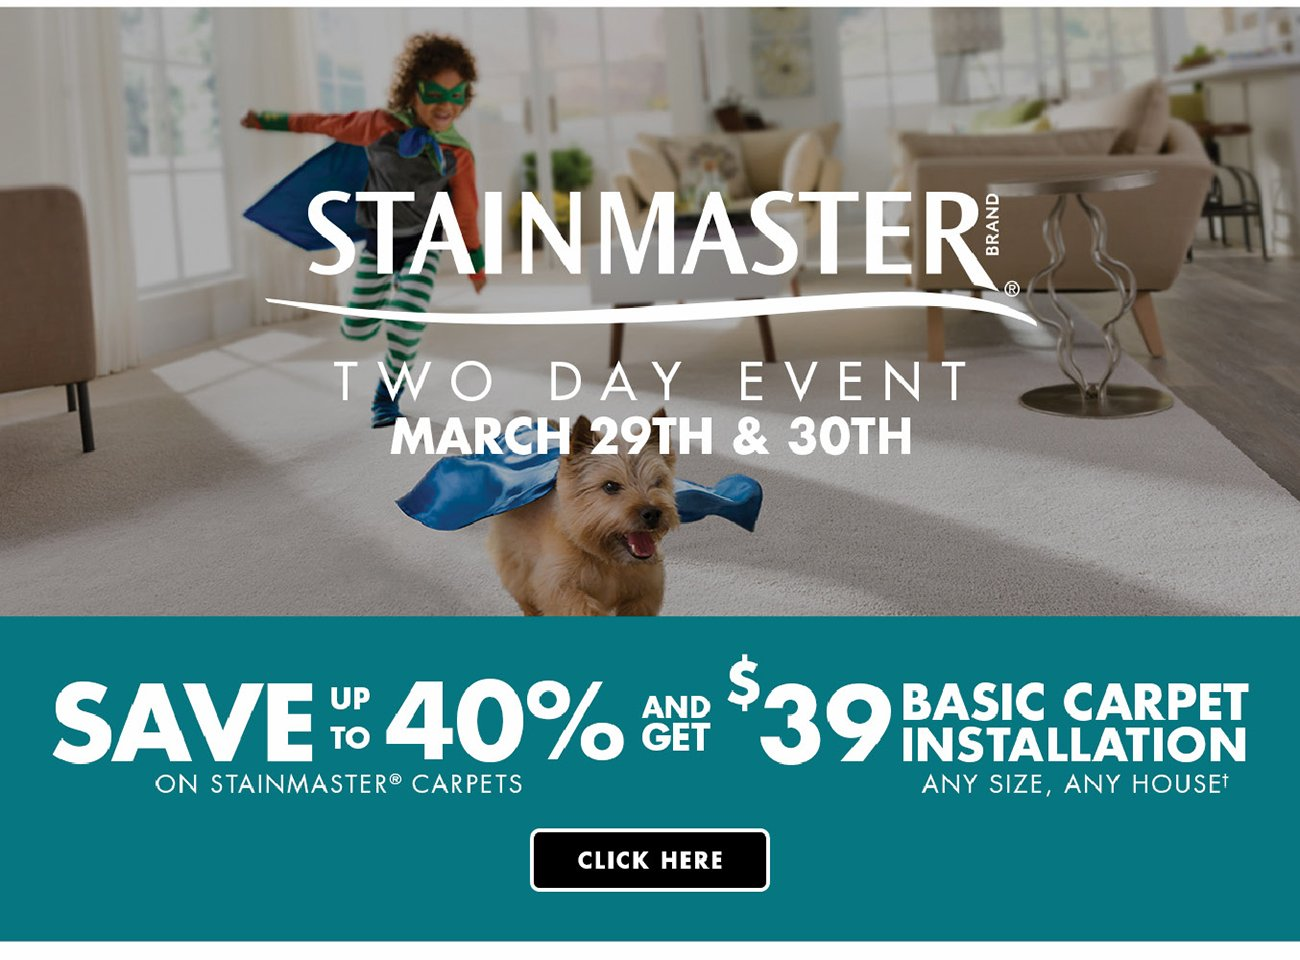 Stainmaster-two-day-event